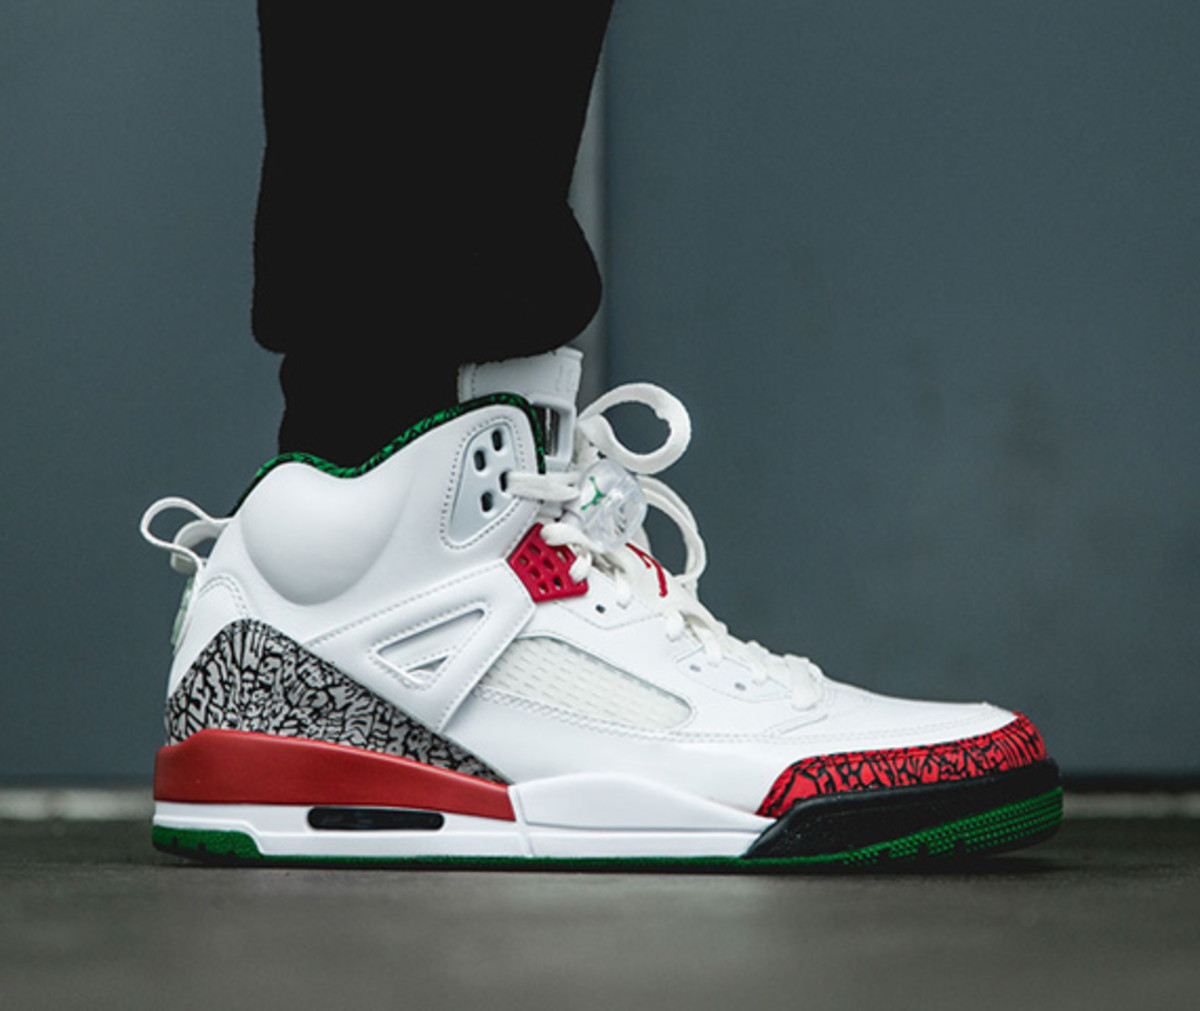 quality design 17338 9d8f8 A tribute to director Spike Lee s long association with Jordan Brand and  his groundbreaking 40 Acres and a Mule production company, the Jordan  Spizike ...